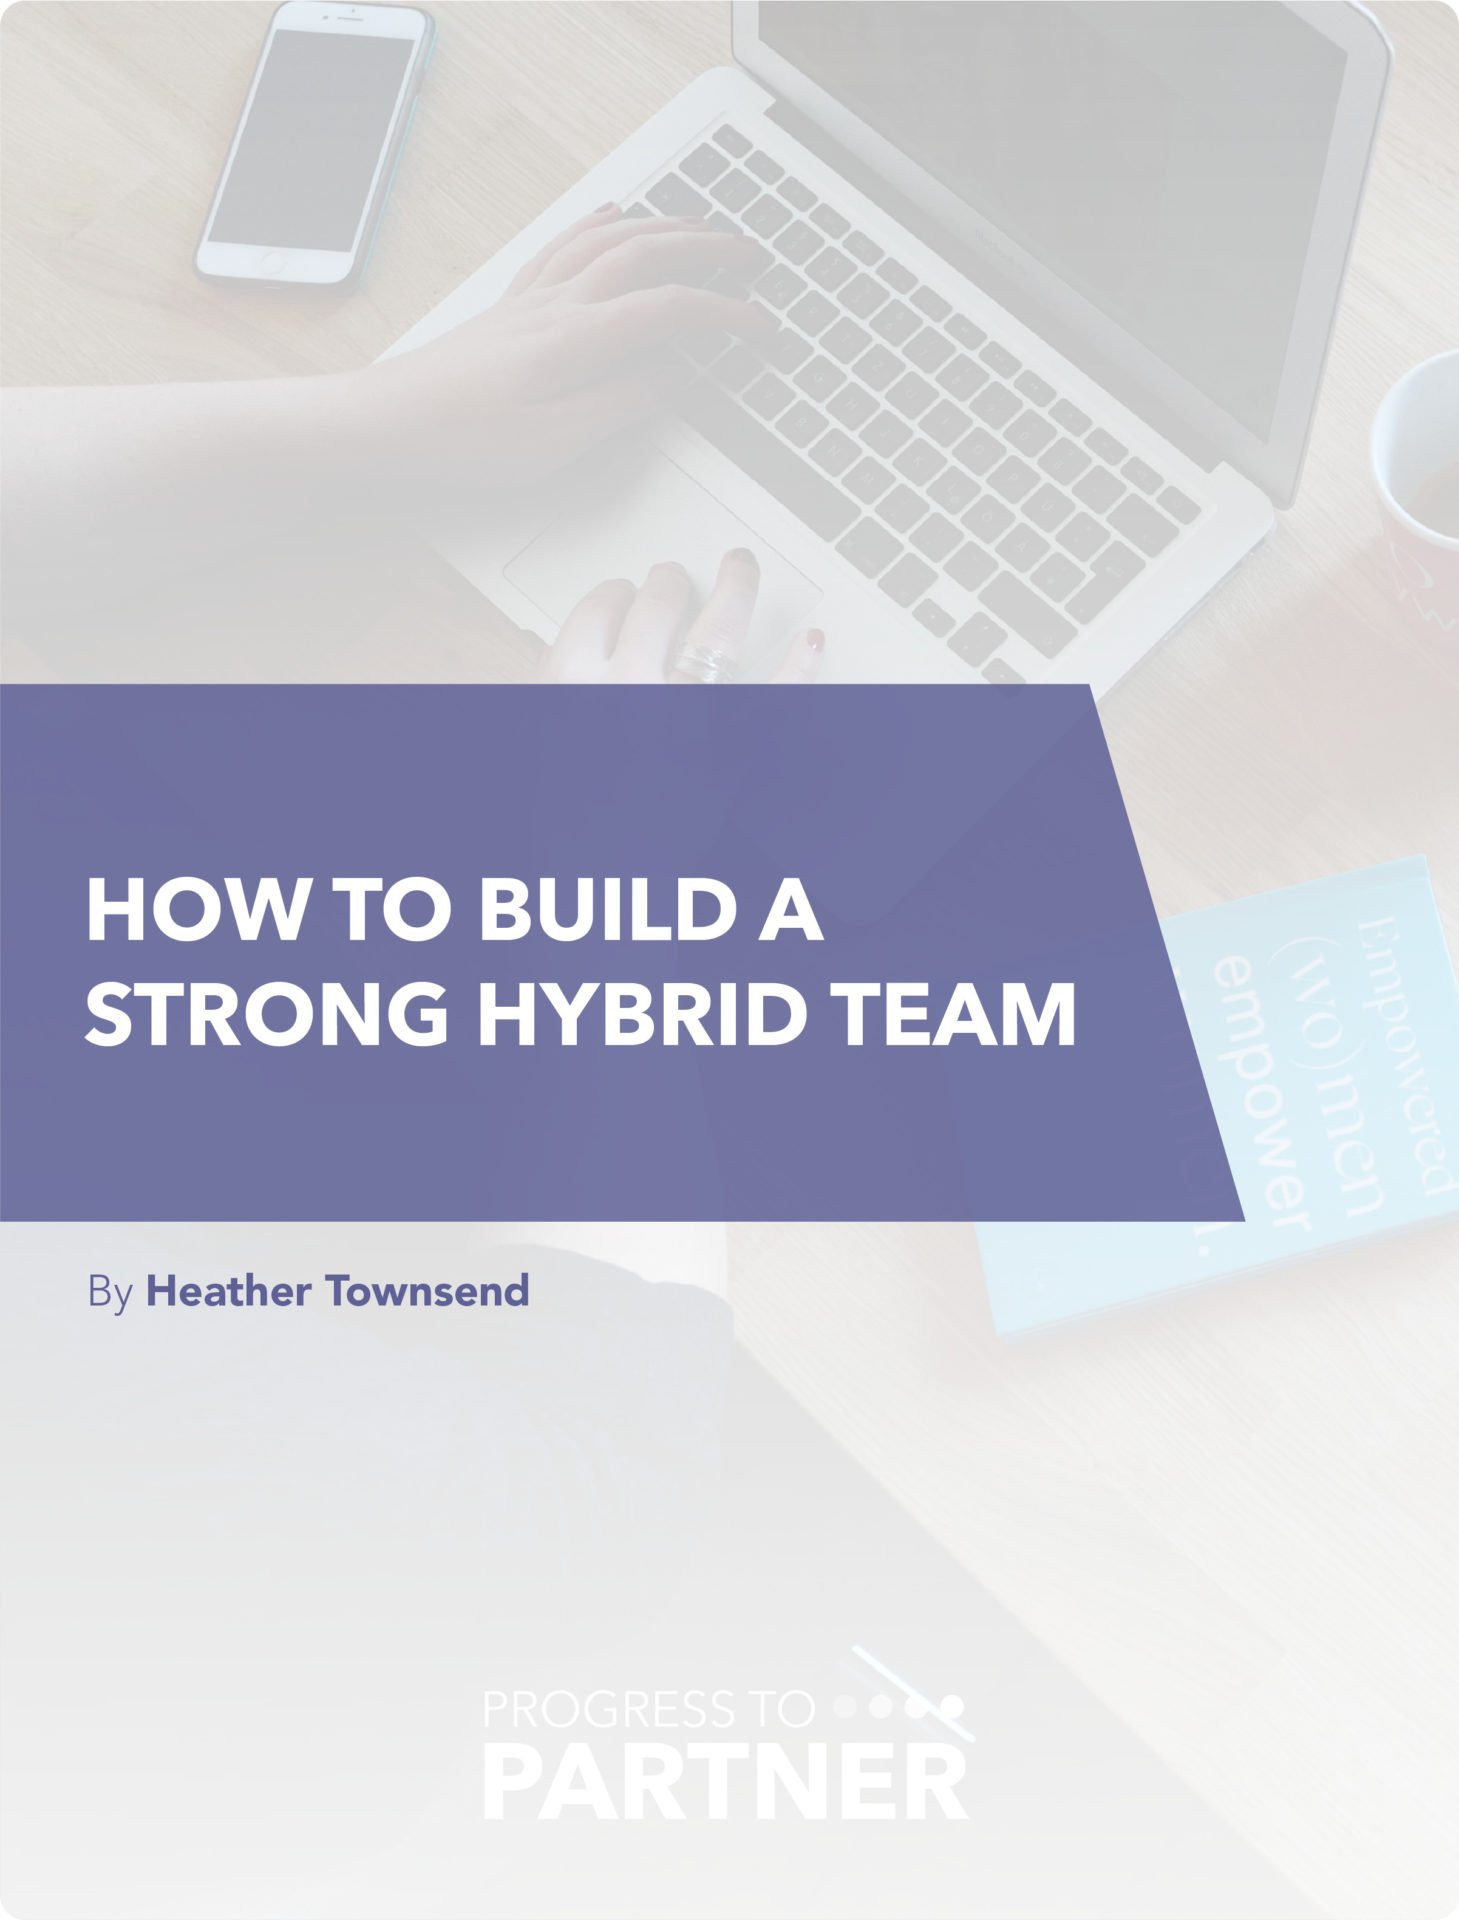 How to create a strong hybrid team